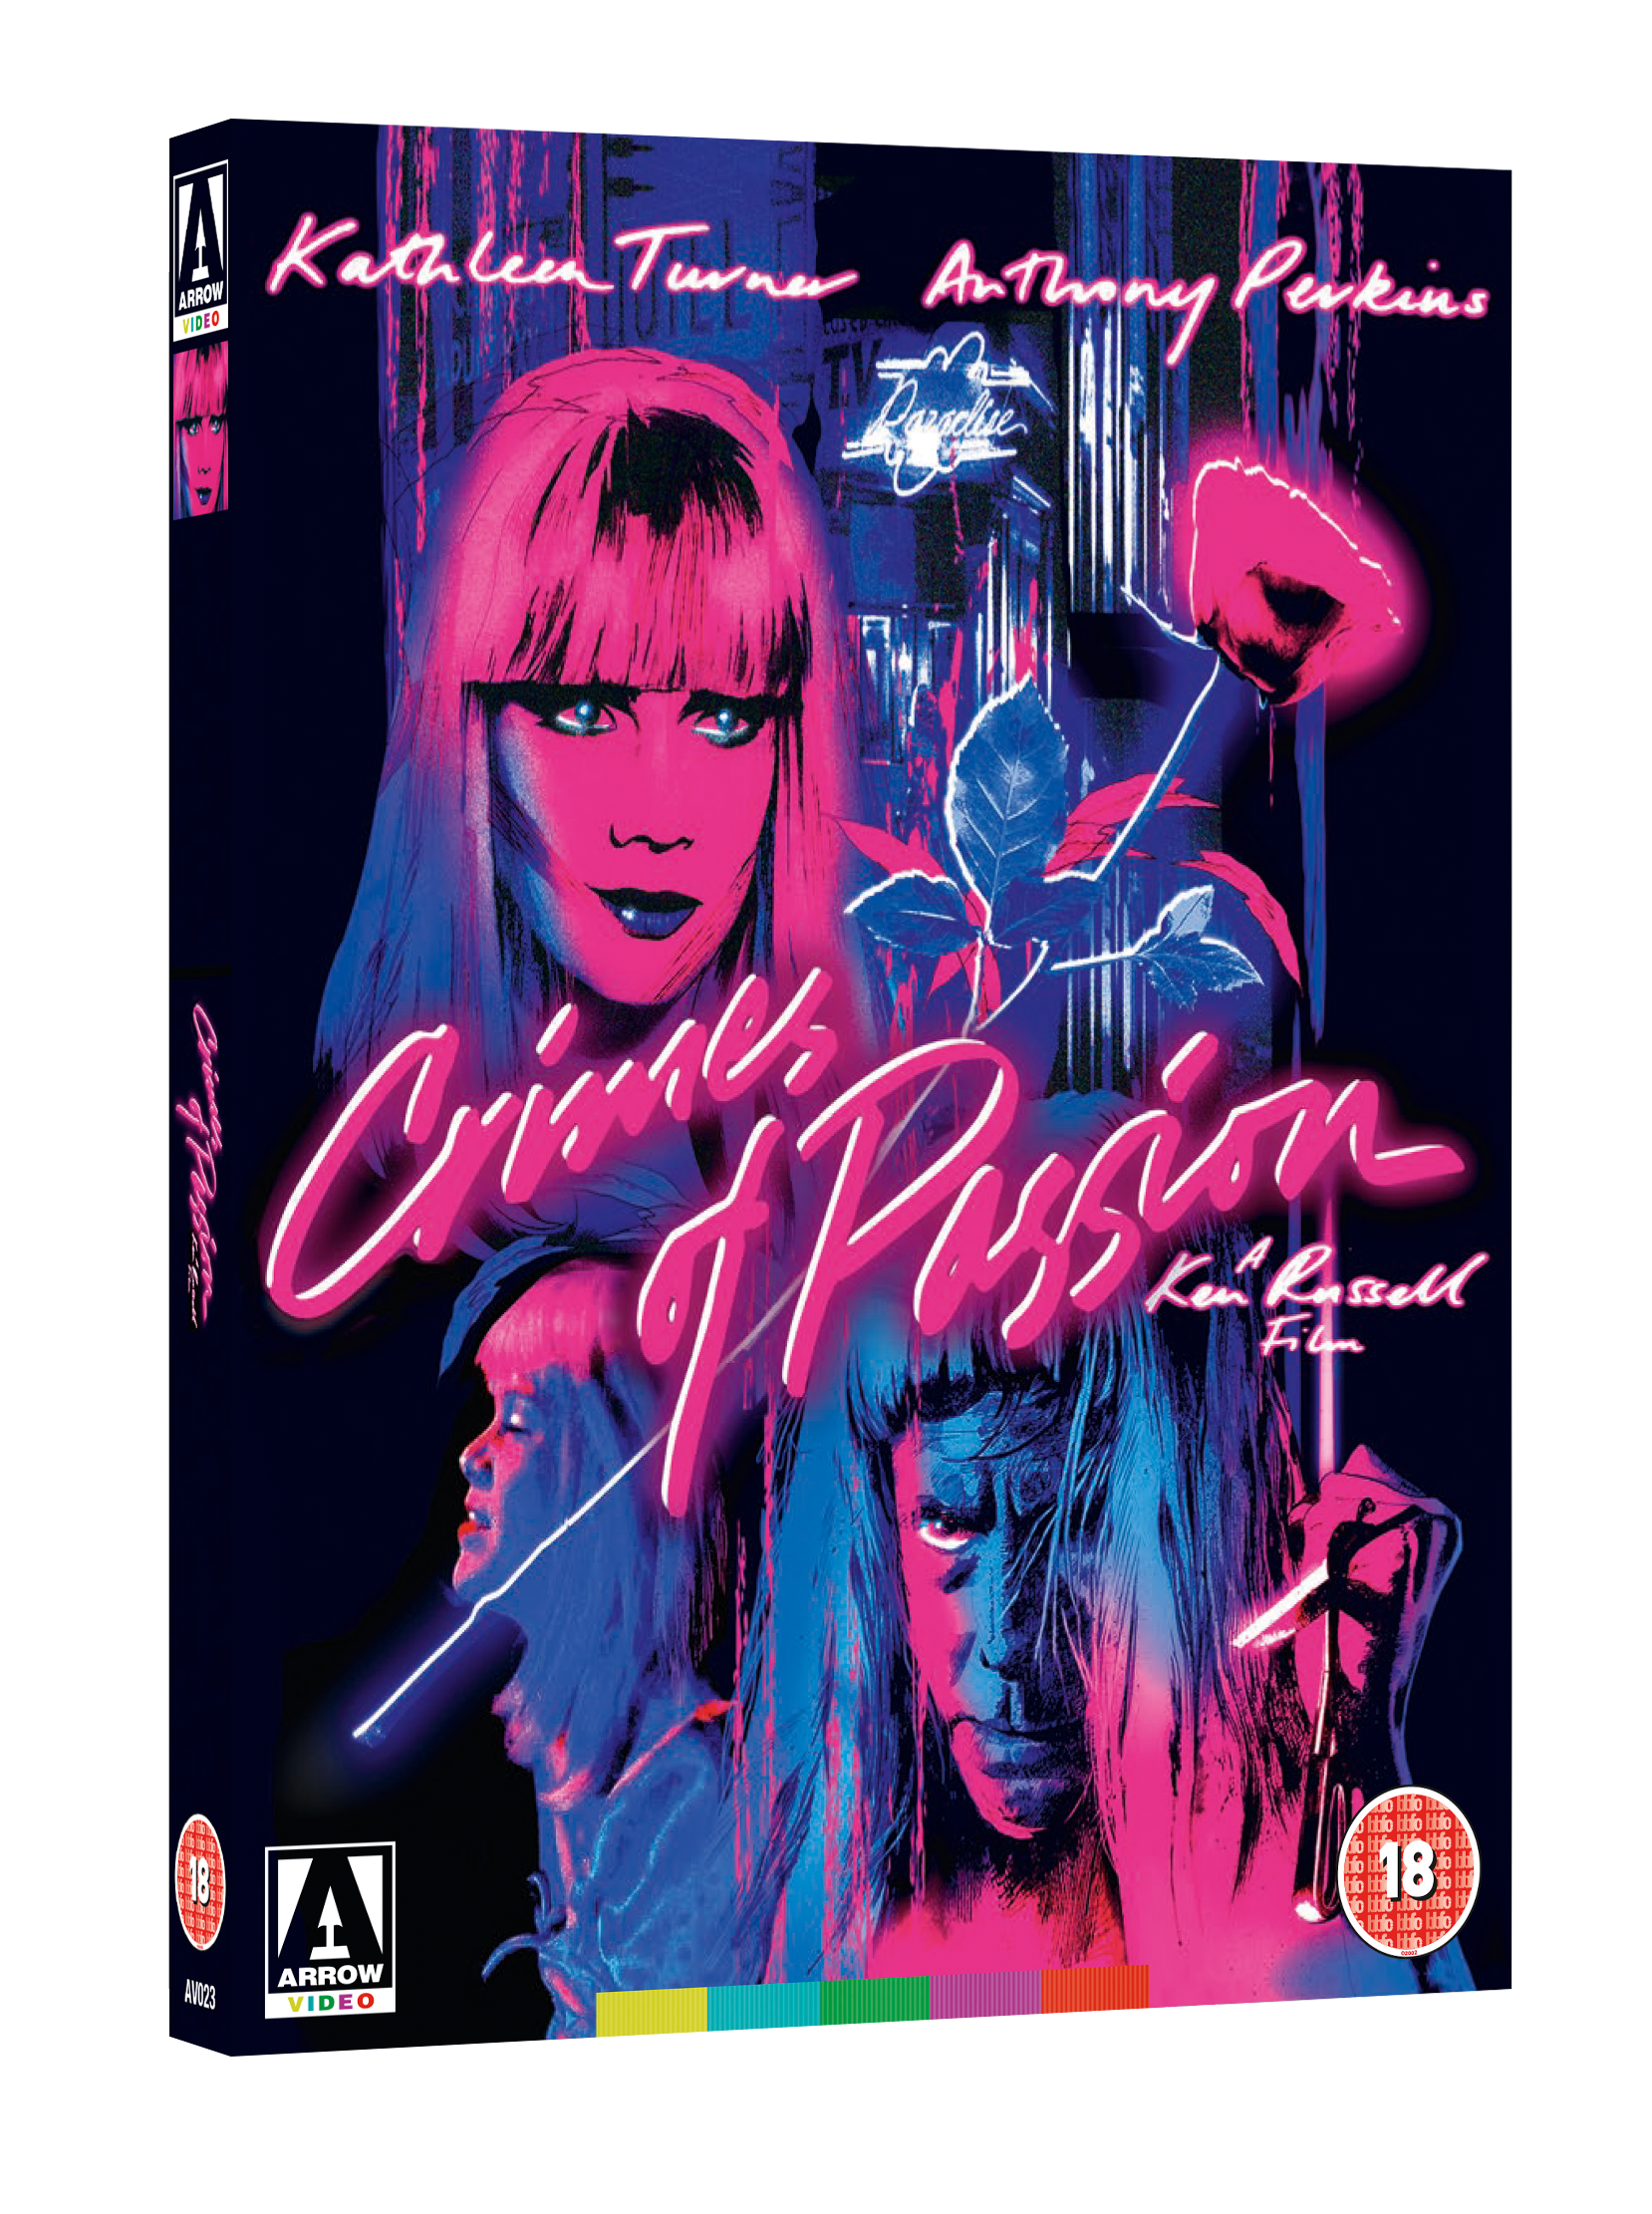 Crimes Of Passion Blu-ray review: A Psycho-sexual black comedy